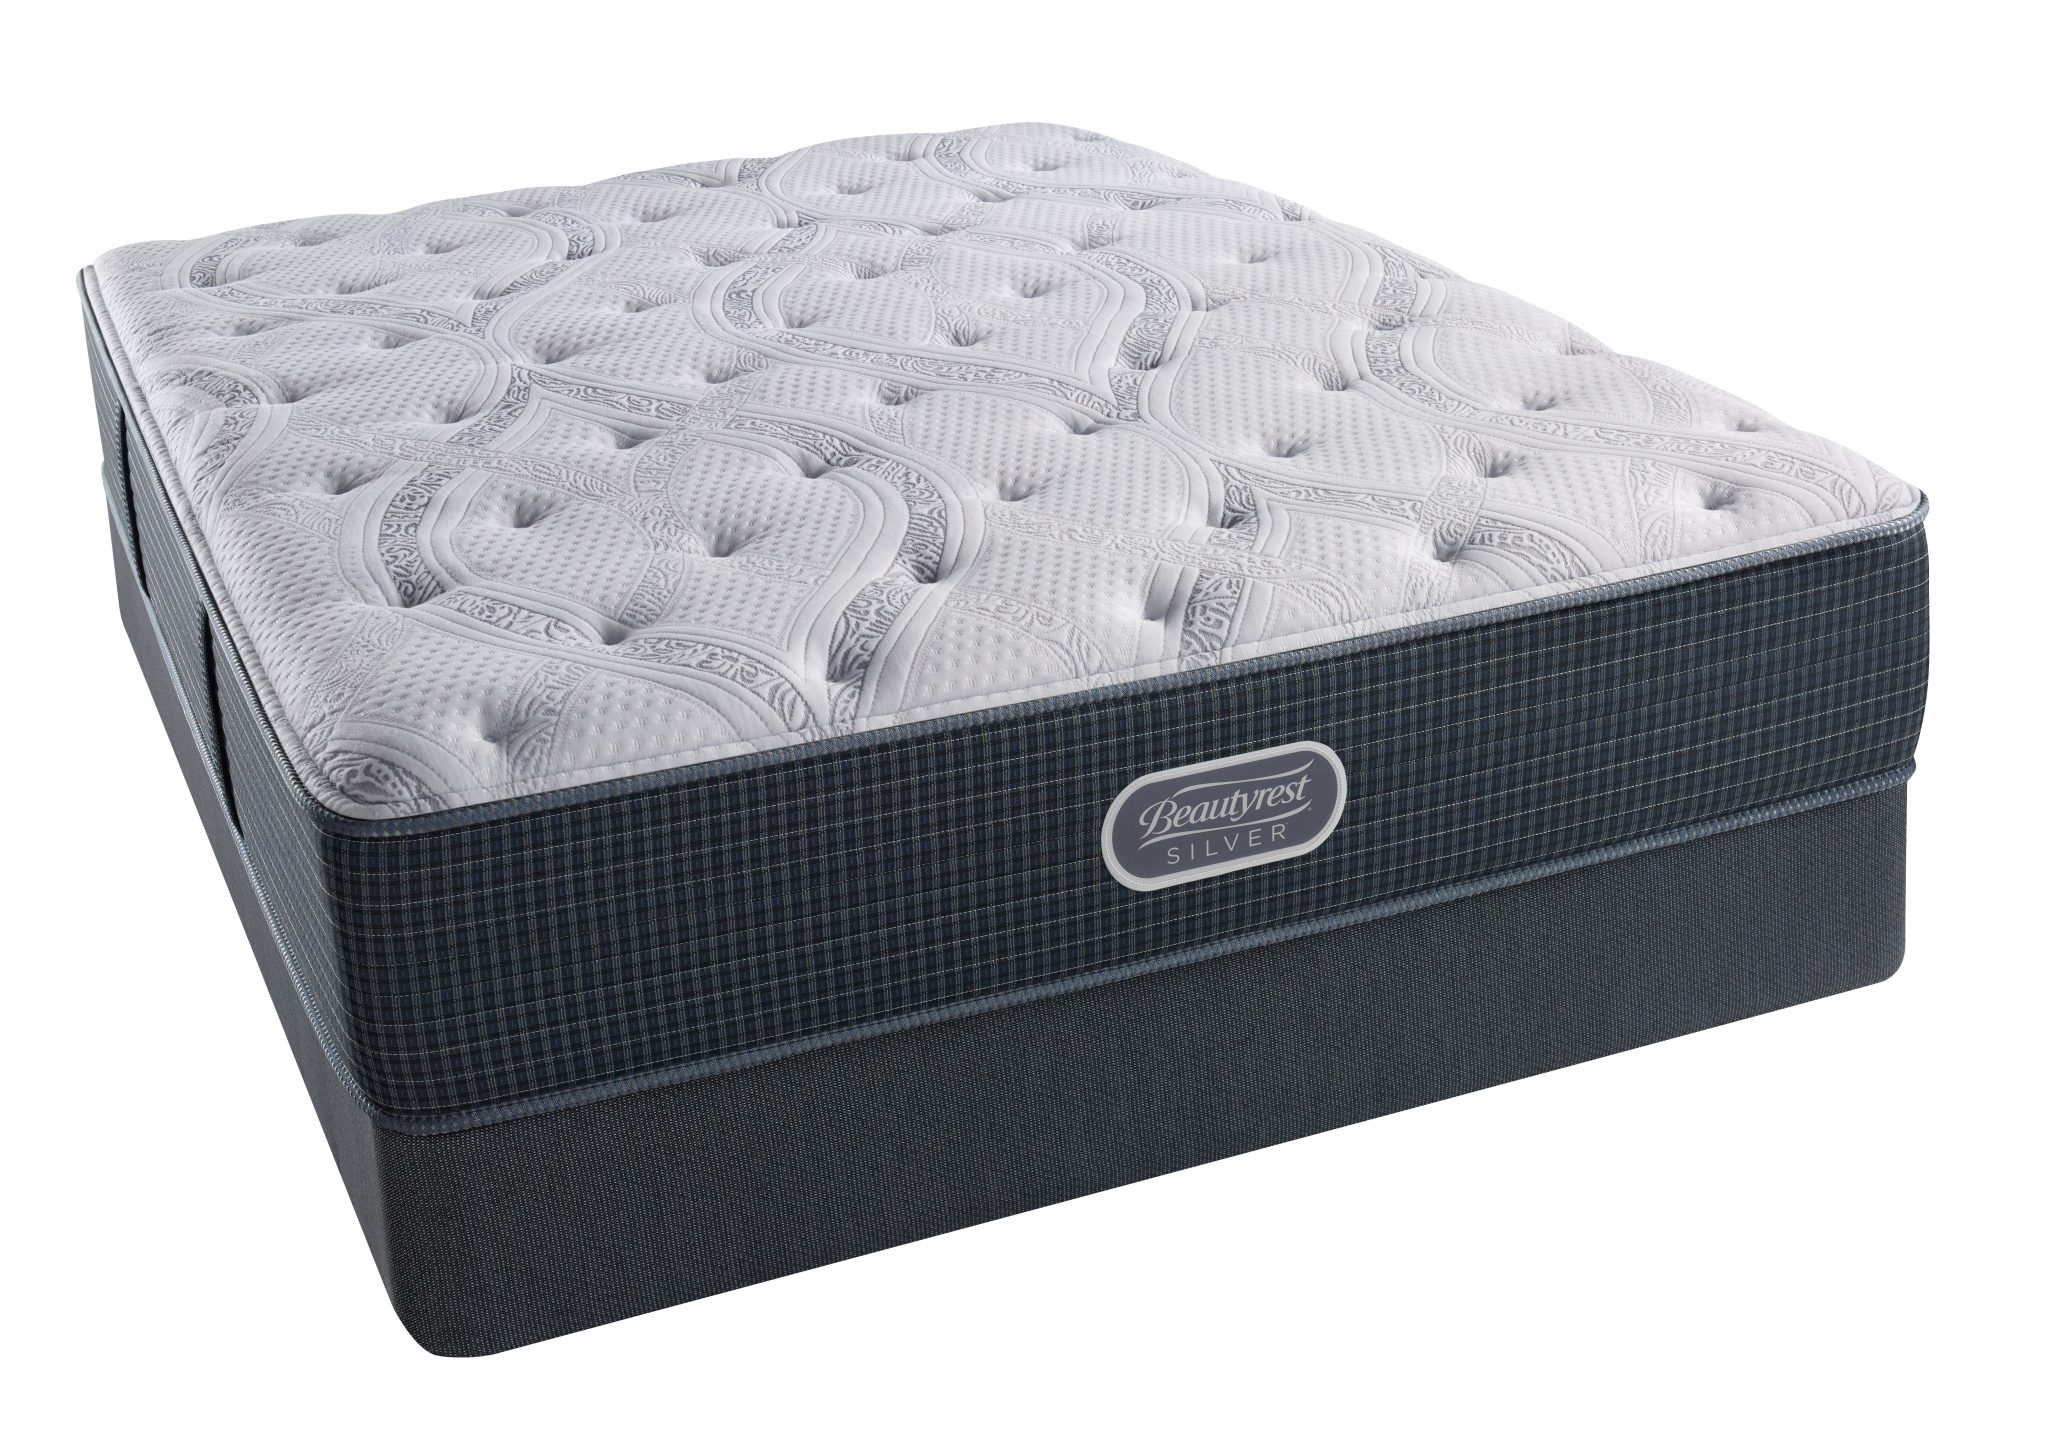 Beautyrest North Cape Luxury Firm Queen Mattress & Boxspring Closeouts in Pittsburgh